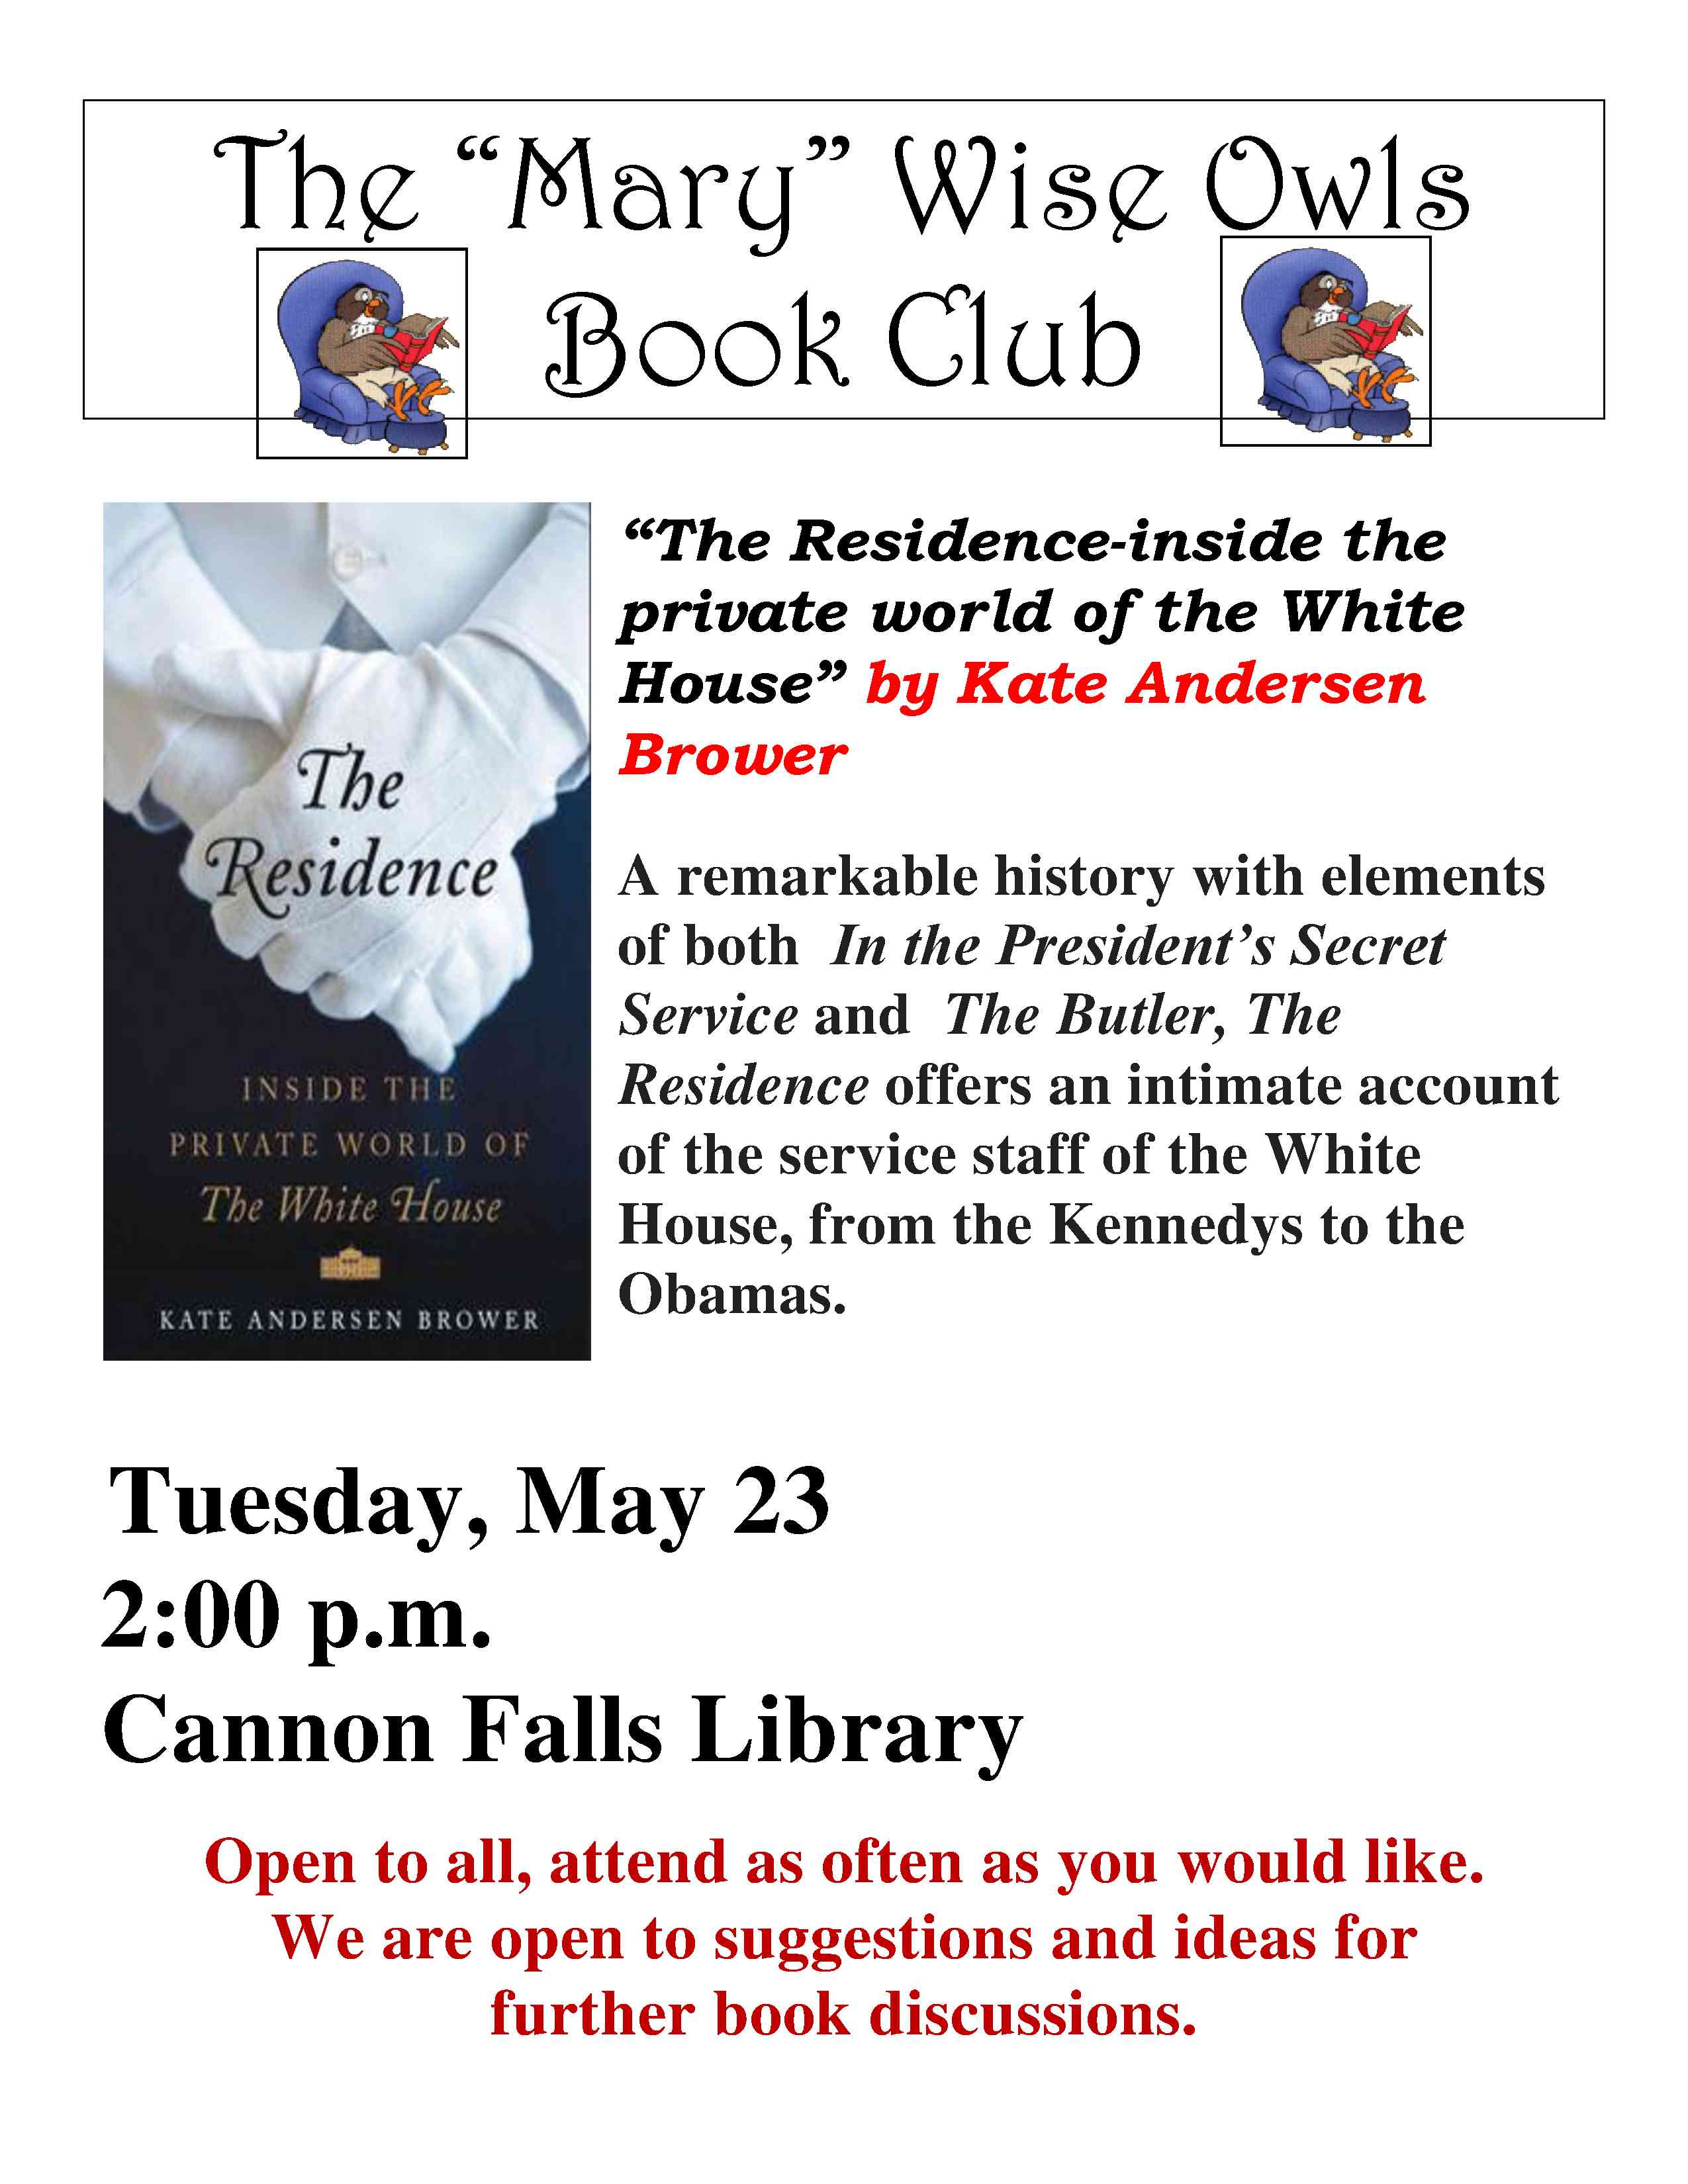 Book Club It Open To All, Attend As Often As You Would Like